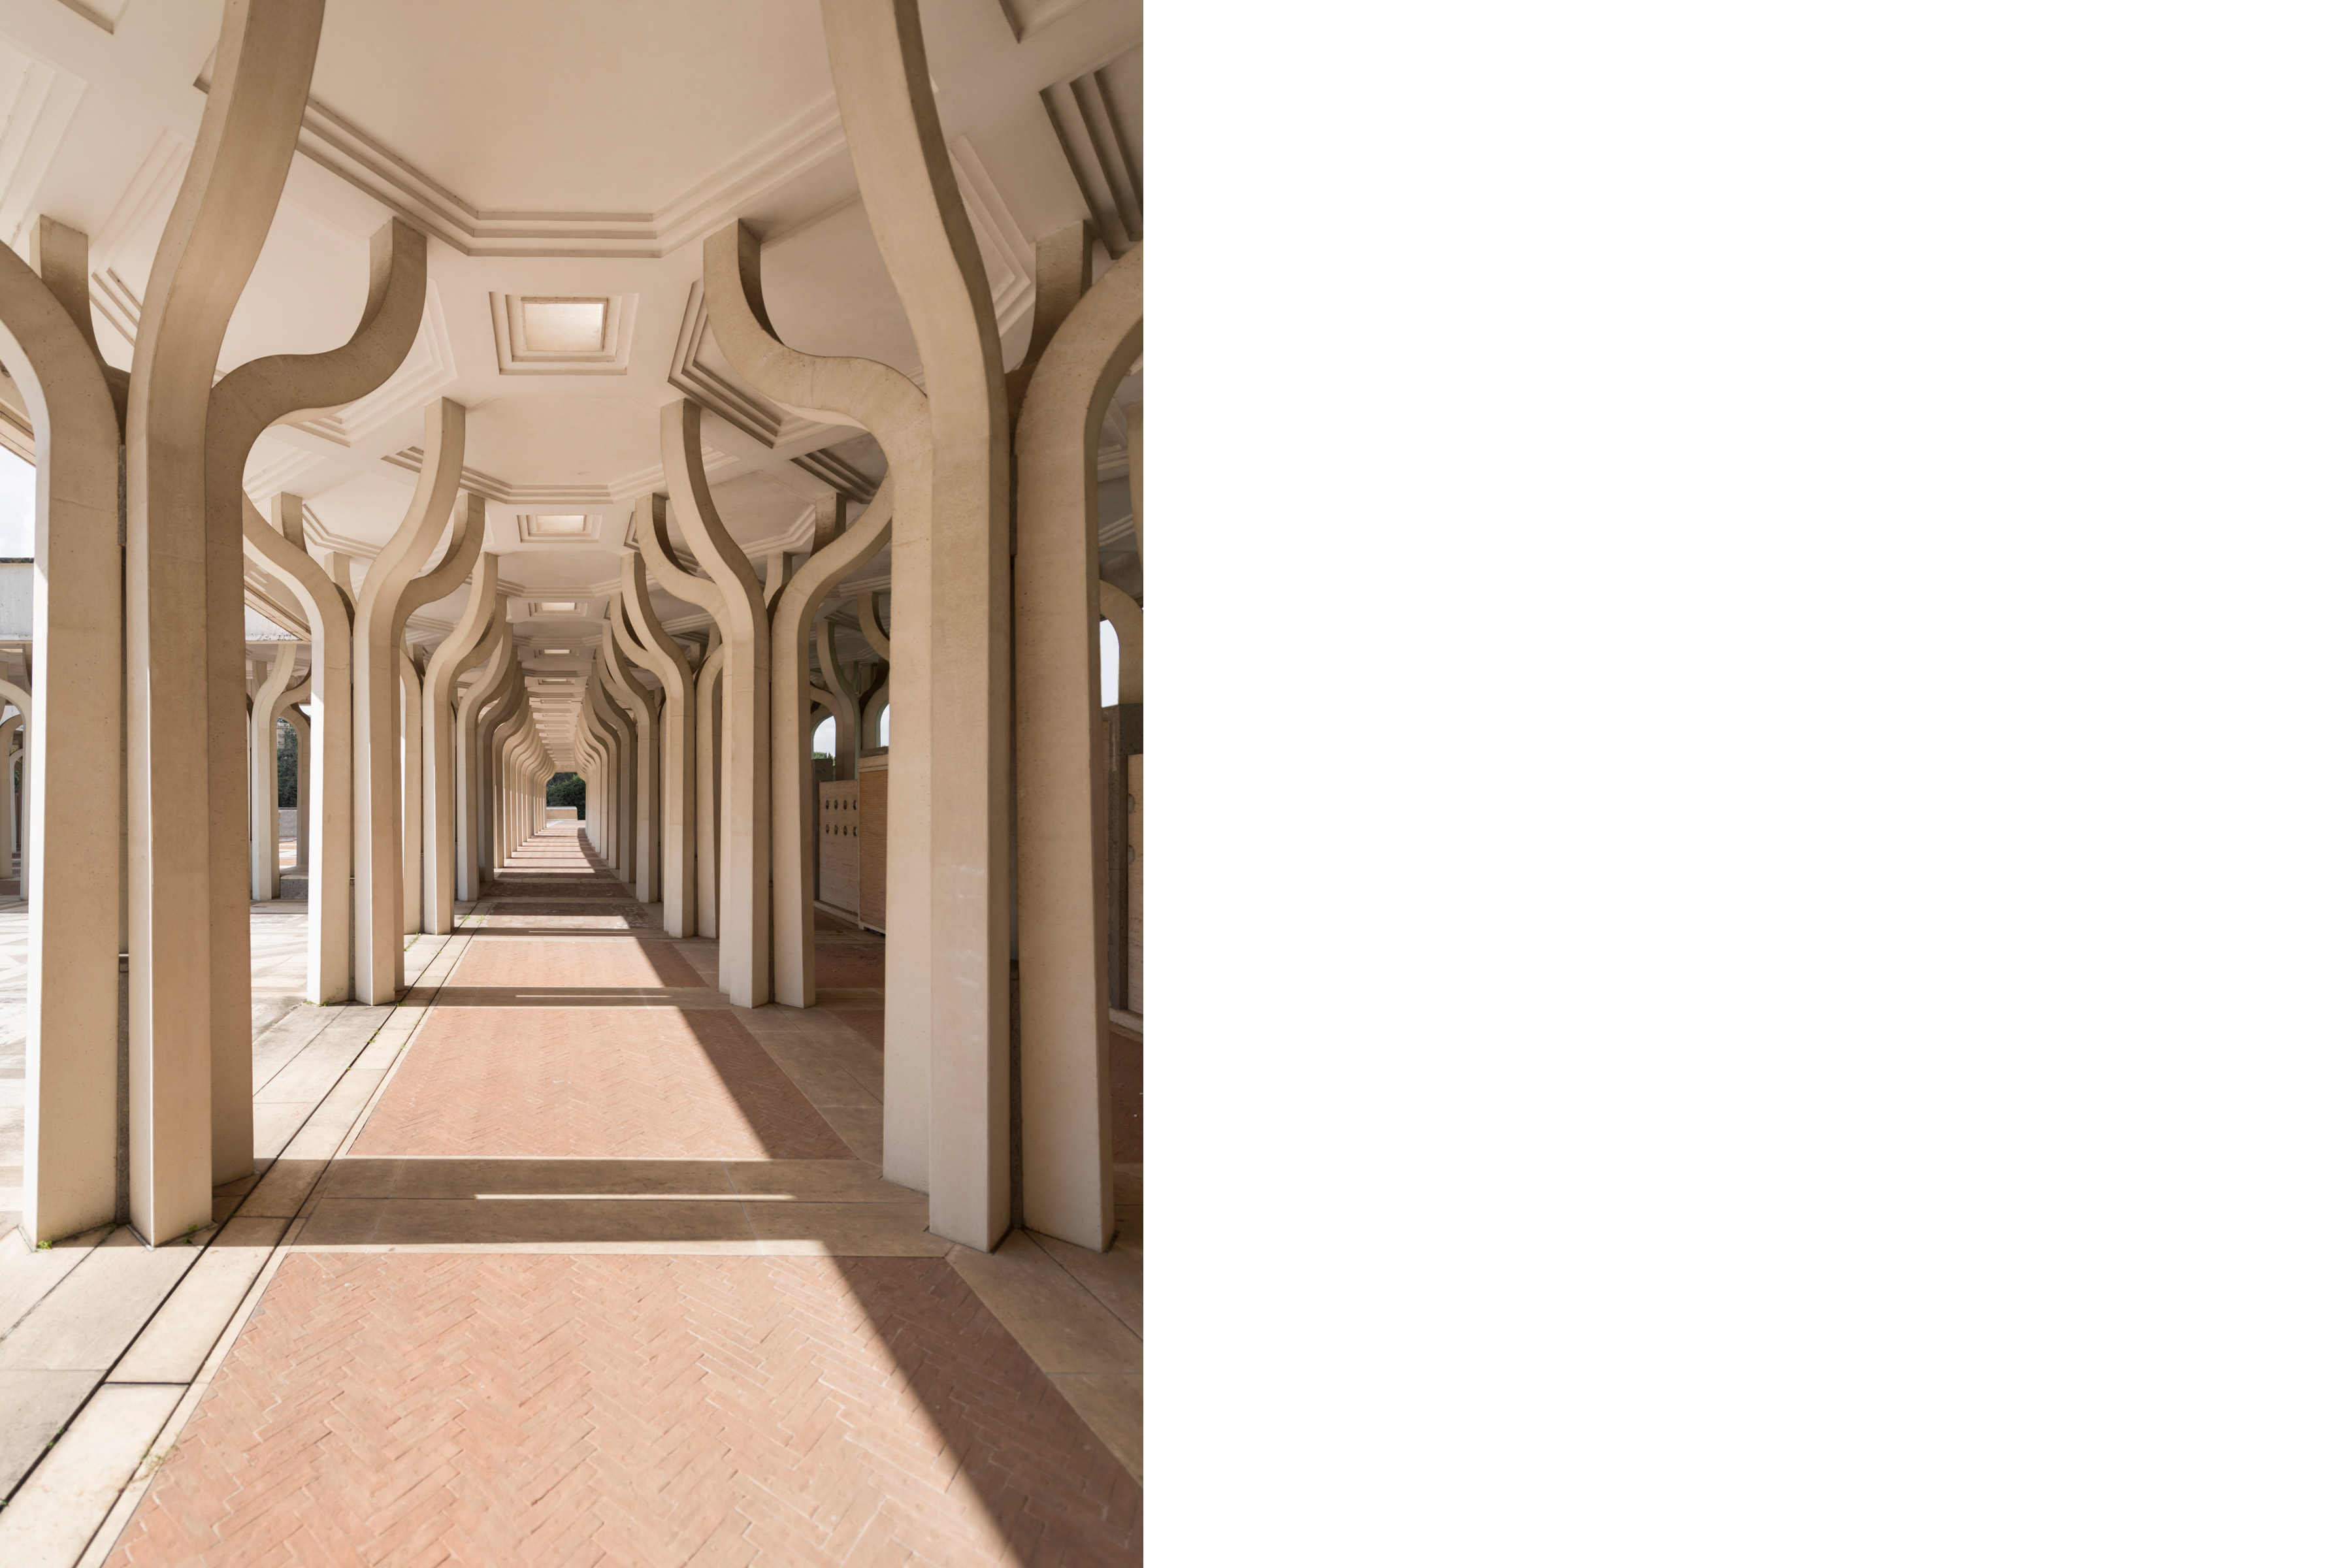 Architecture photo of mosque in Rome